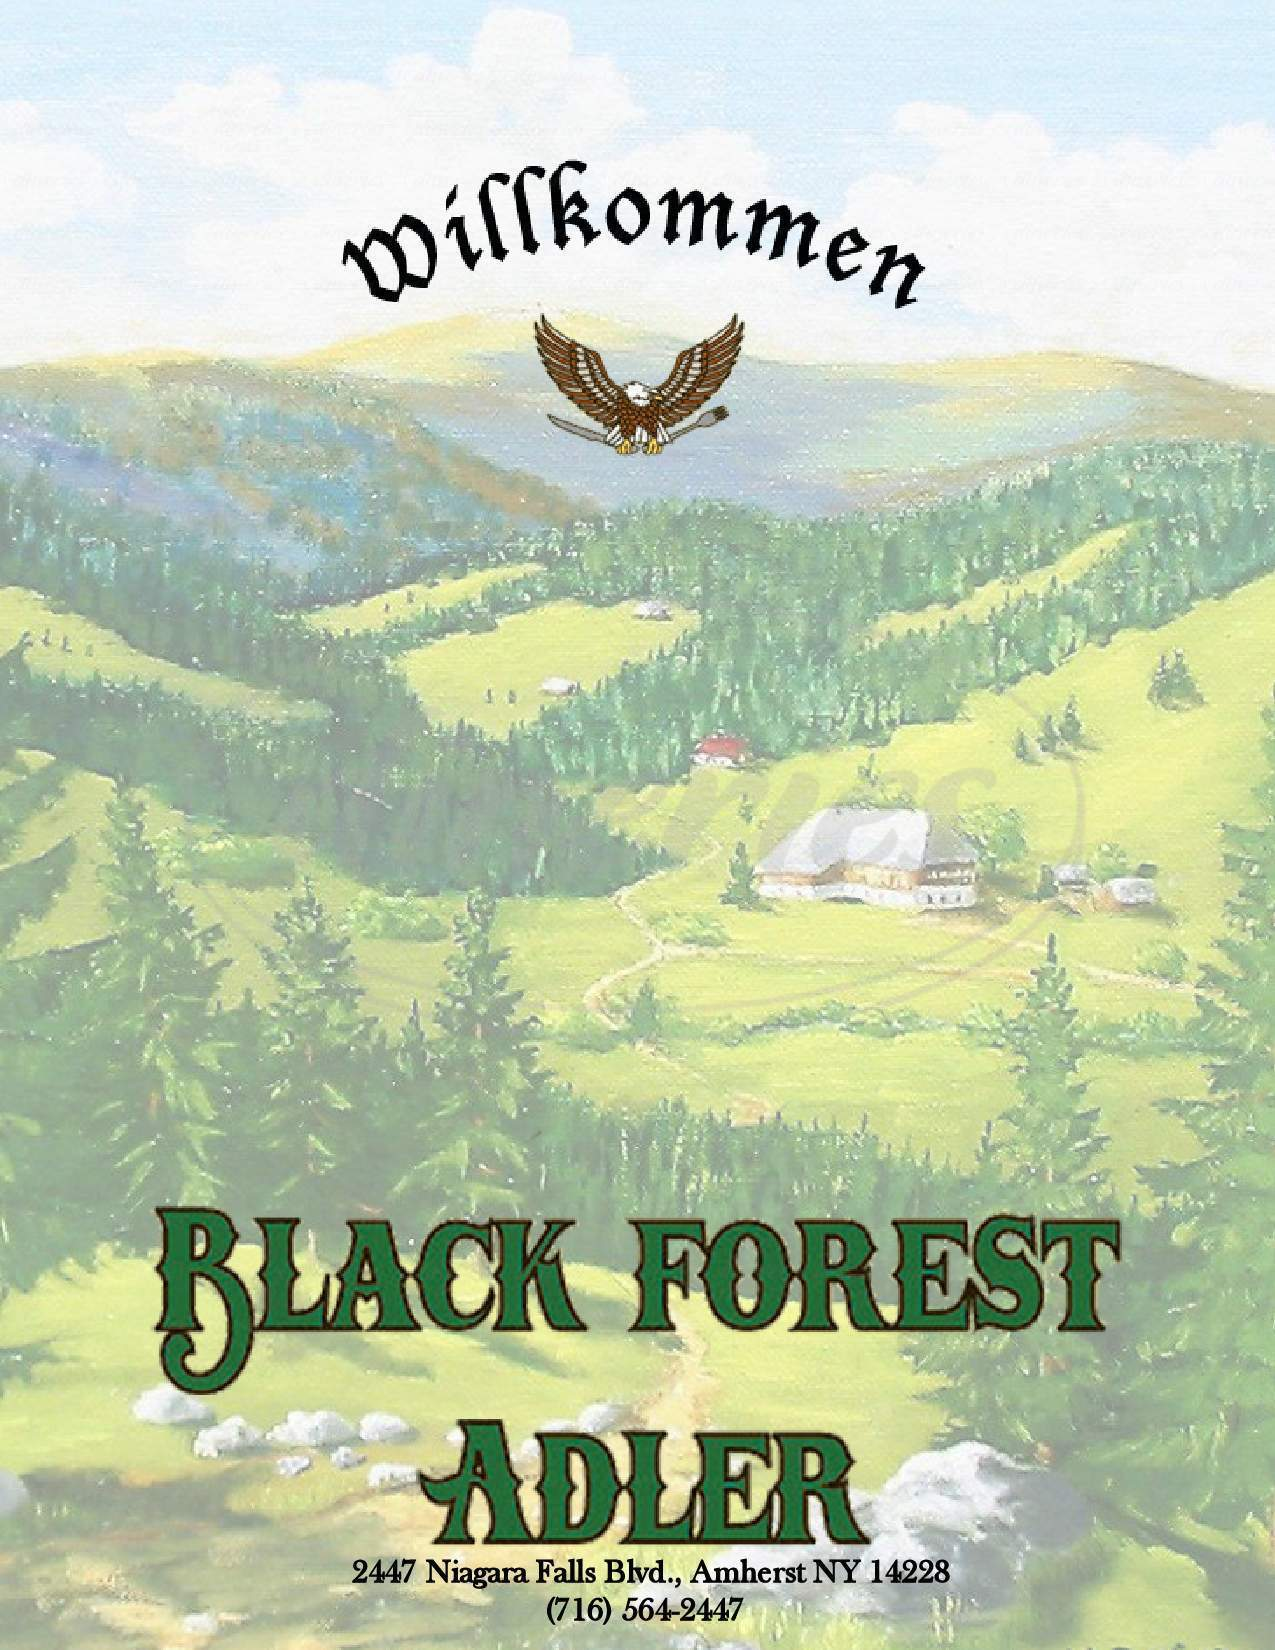 menu for Black Forest Adler